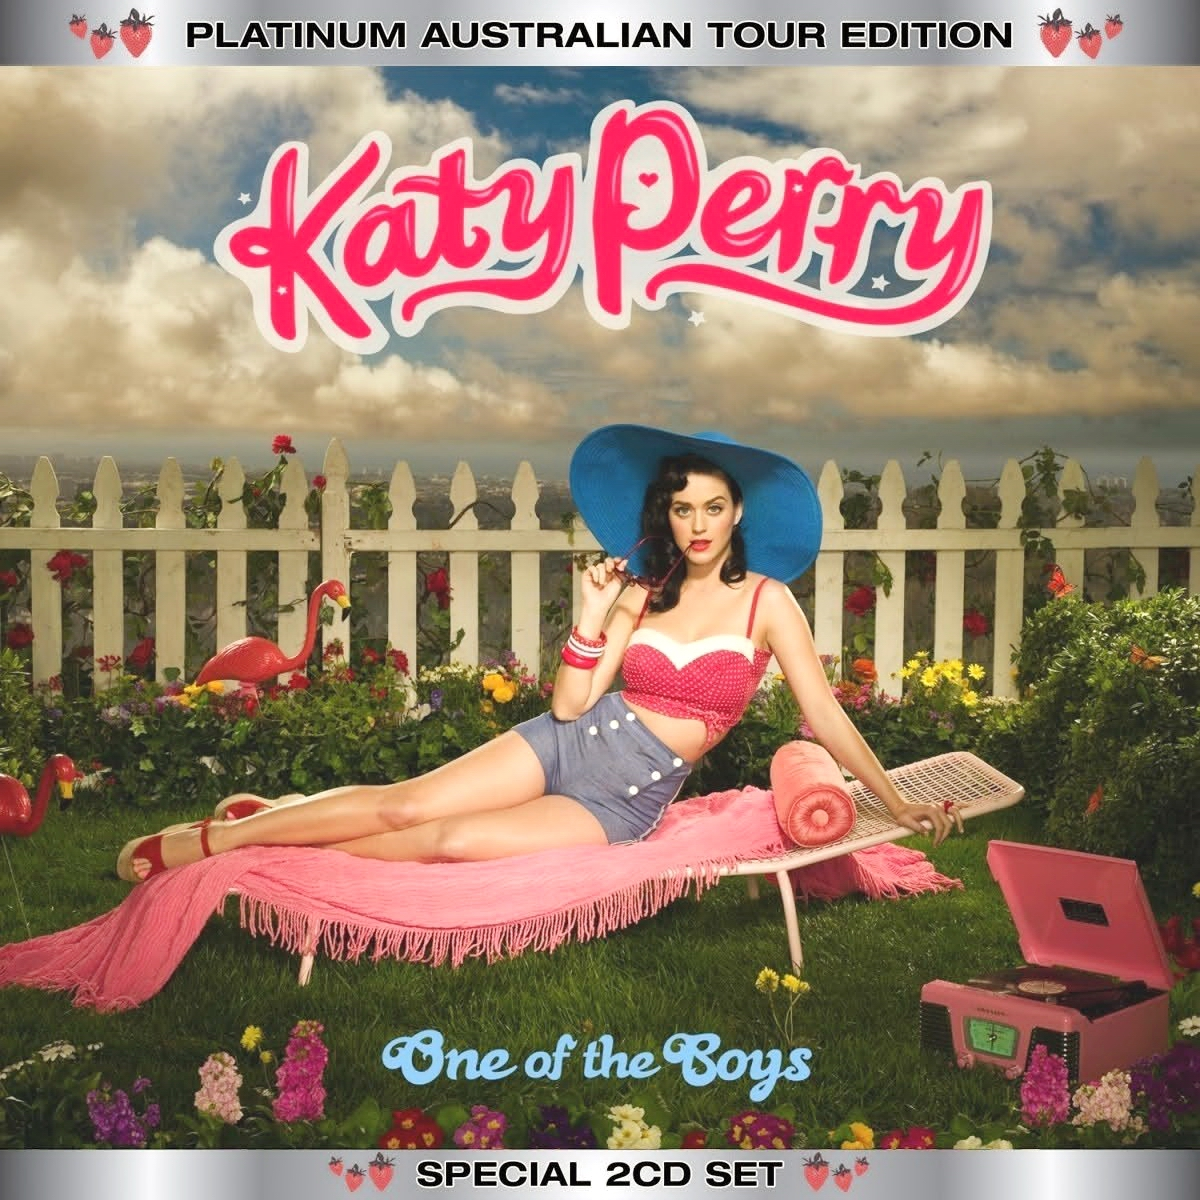 http://2.bp.blogspot.com/-prN23AY4Tf4/UPUT38JjxaI/AAAAAAAADcA/iYRPADYlKFo/s1600/One.Of.The.Boys.Platinum.Australian.Tour.Edition.jpg